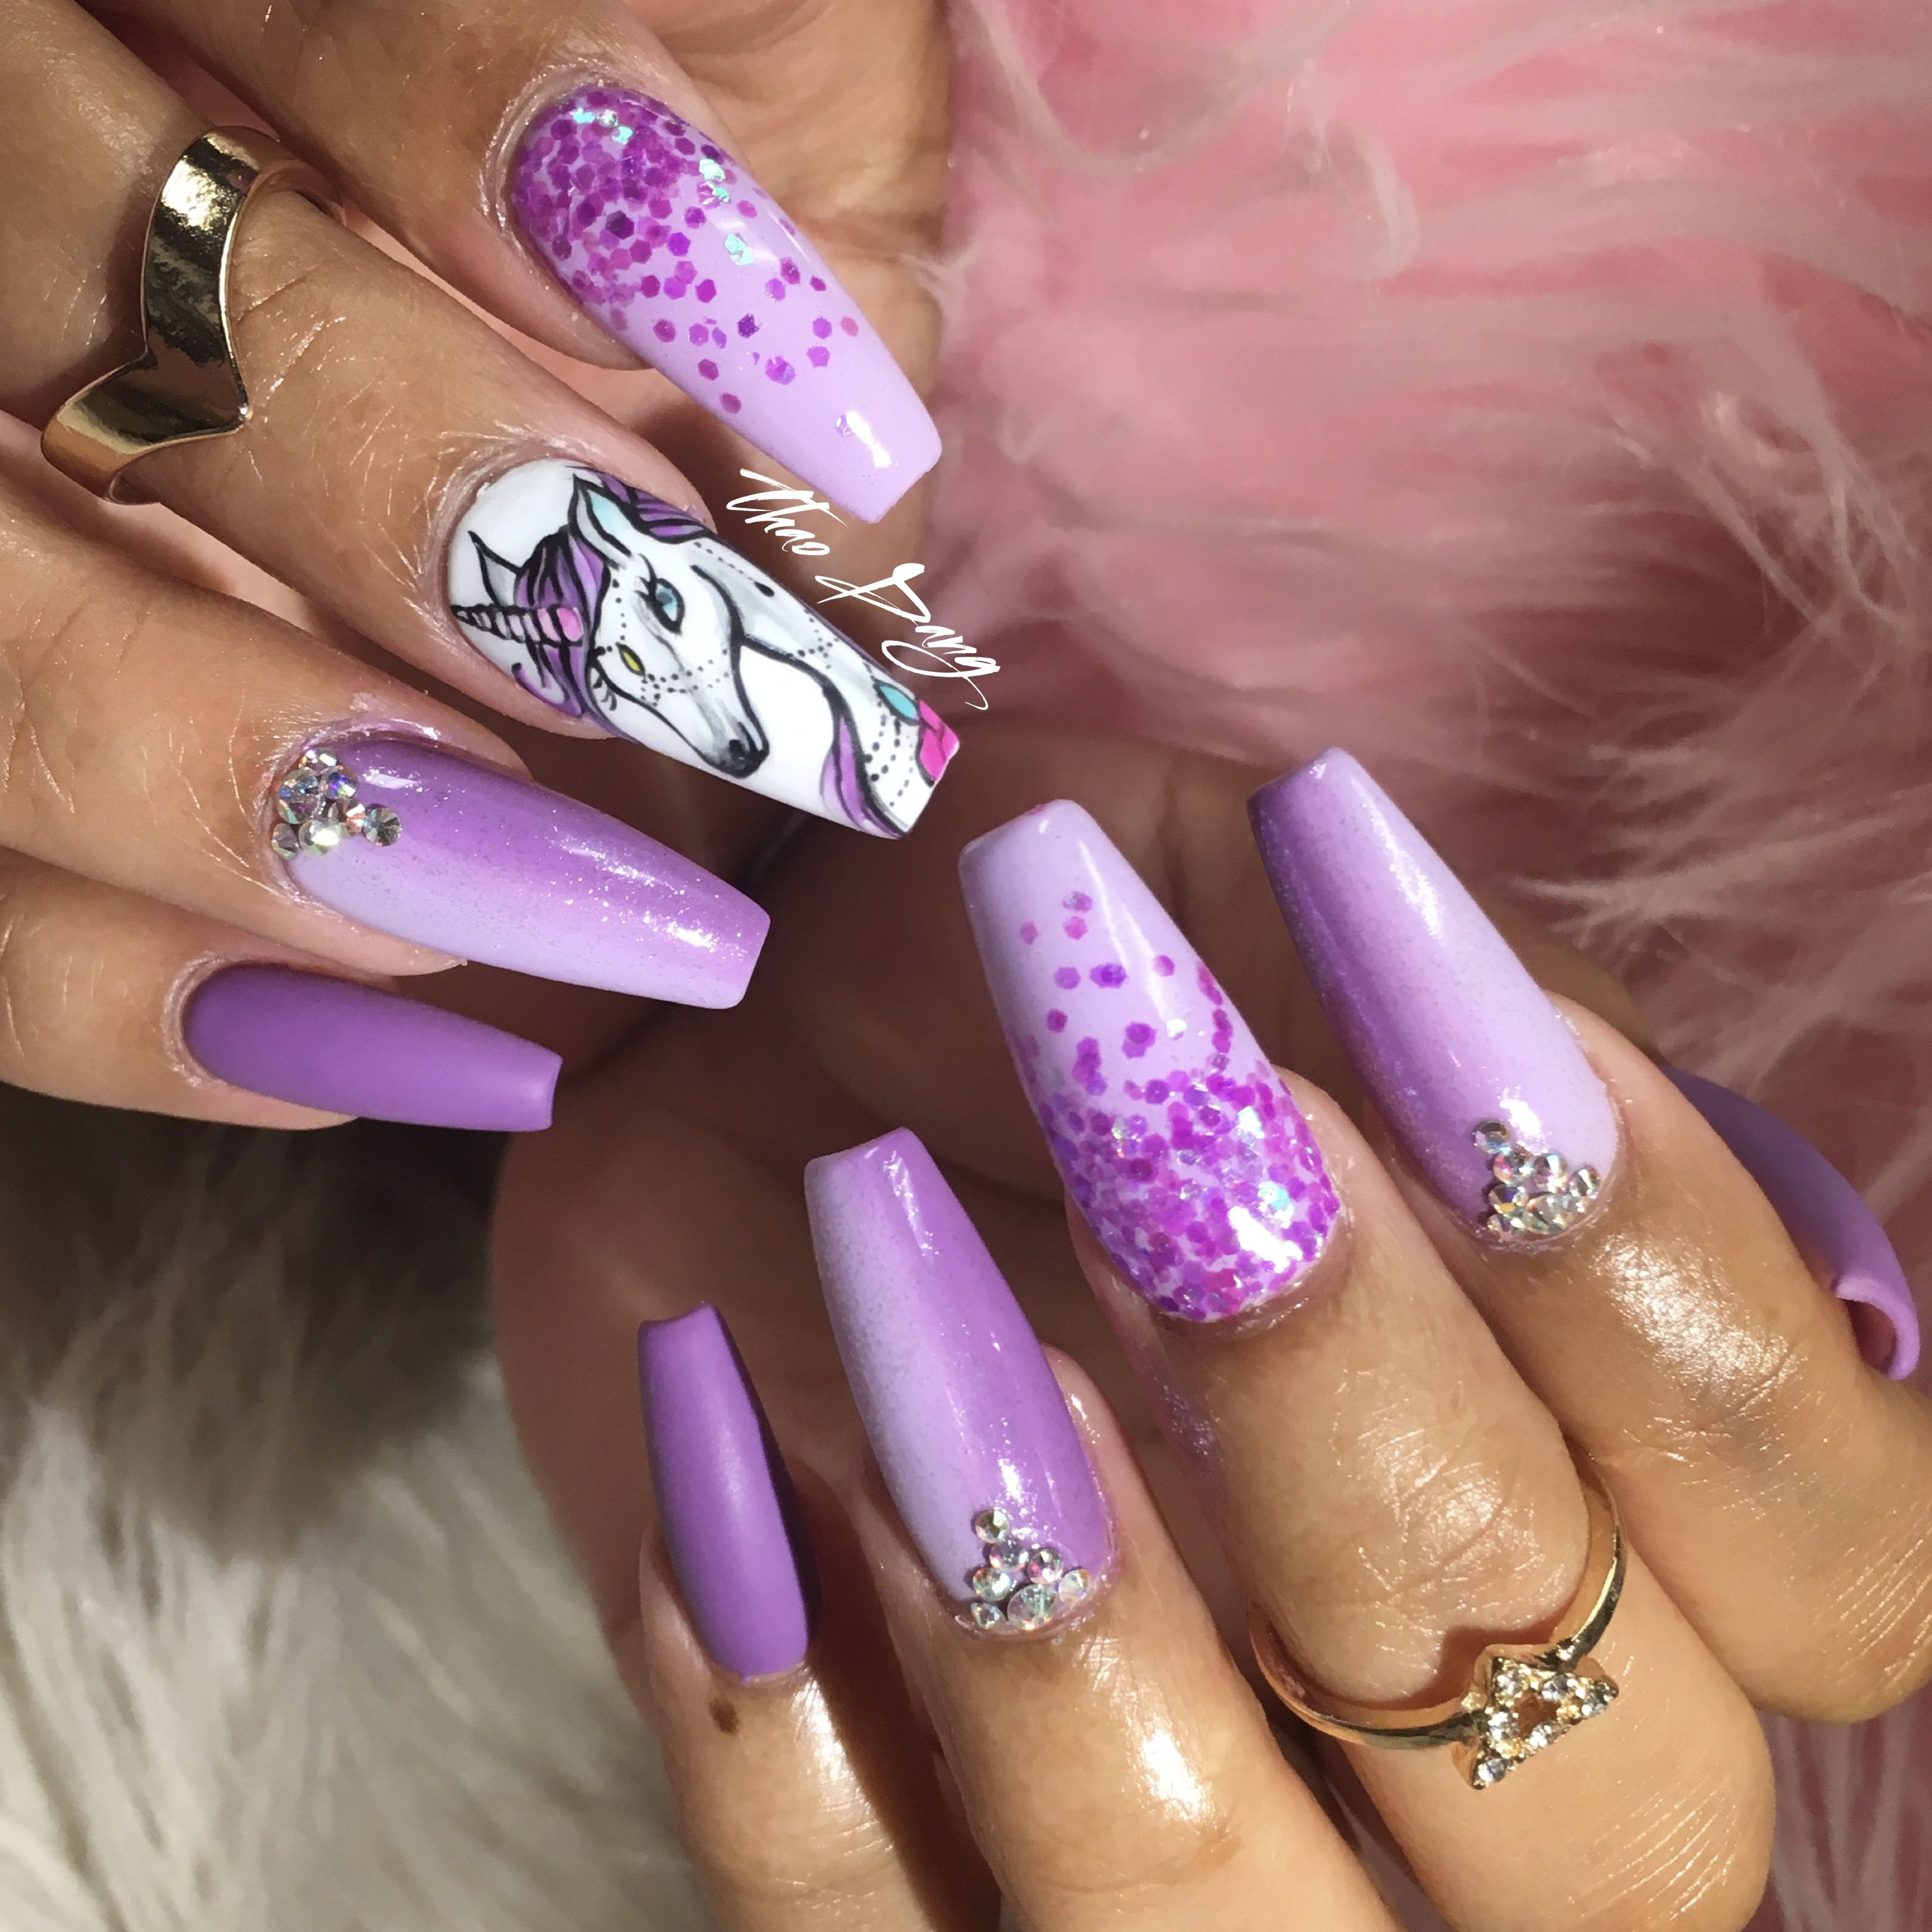 Hand Paint Unicorn Nail Art Nailsbytdang Pink Glitter Nails Coffin Nails Designs Nails Inspiration